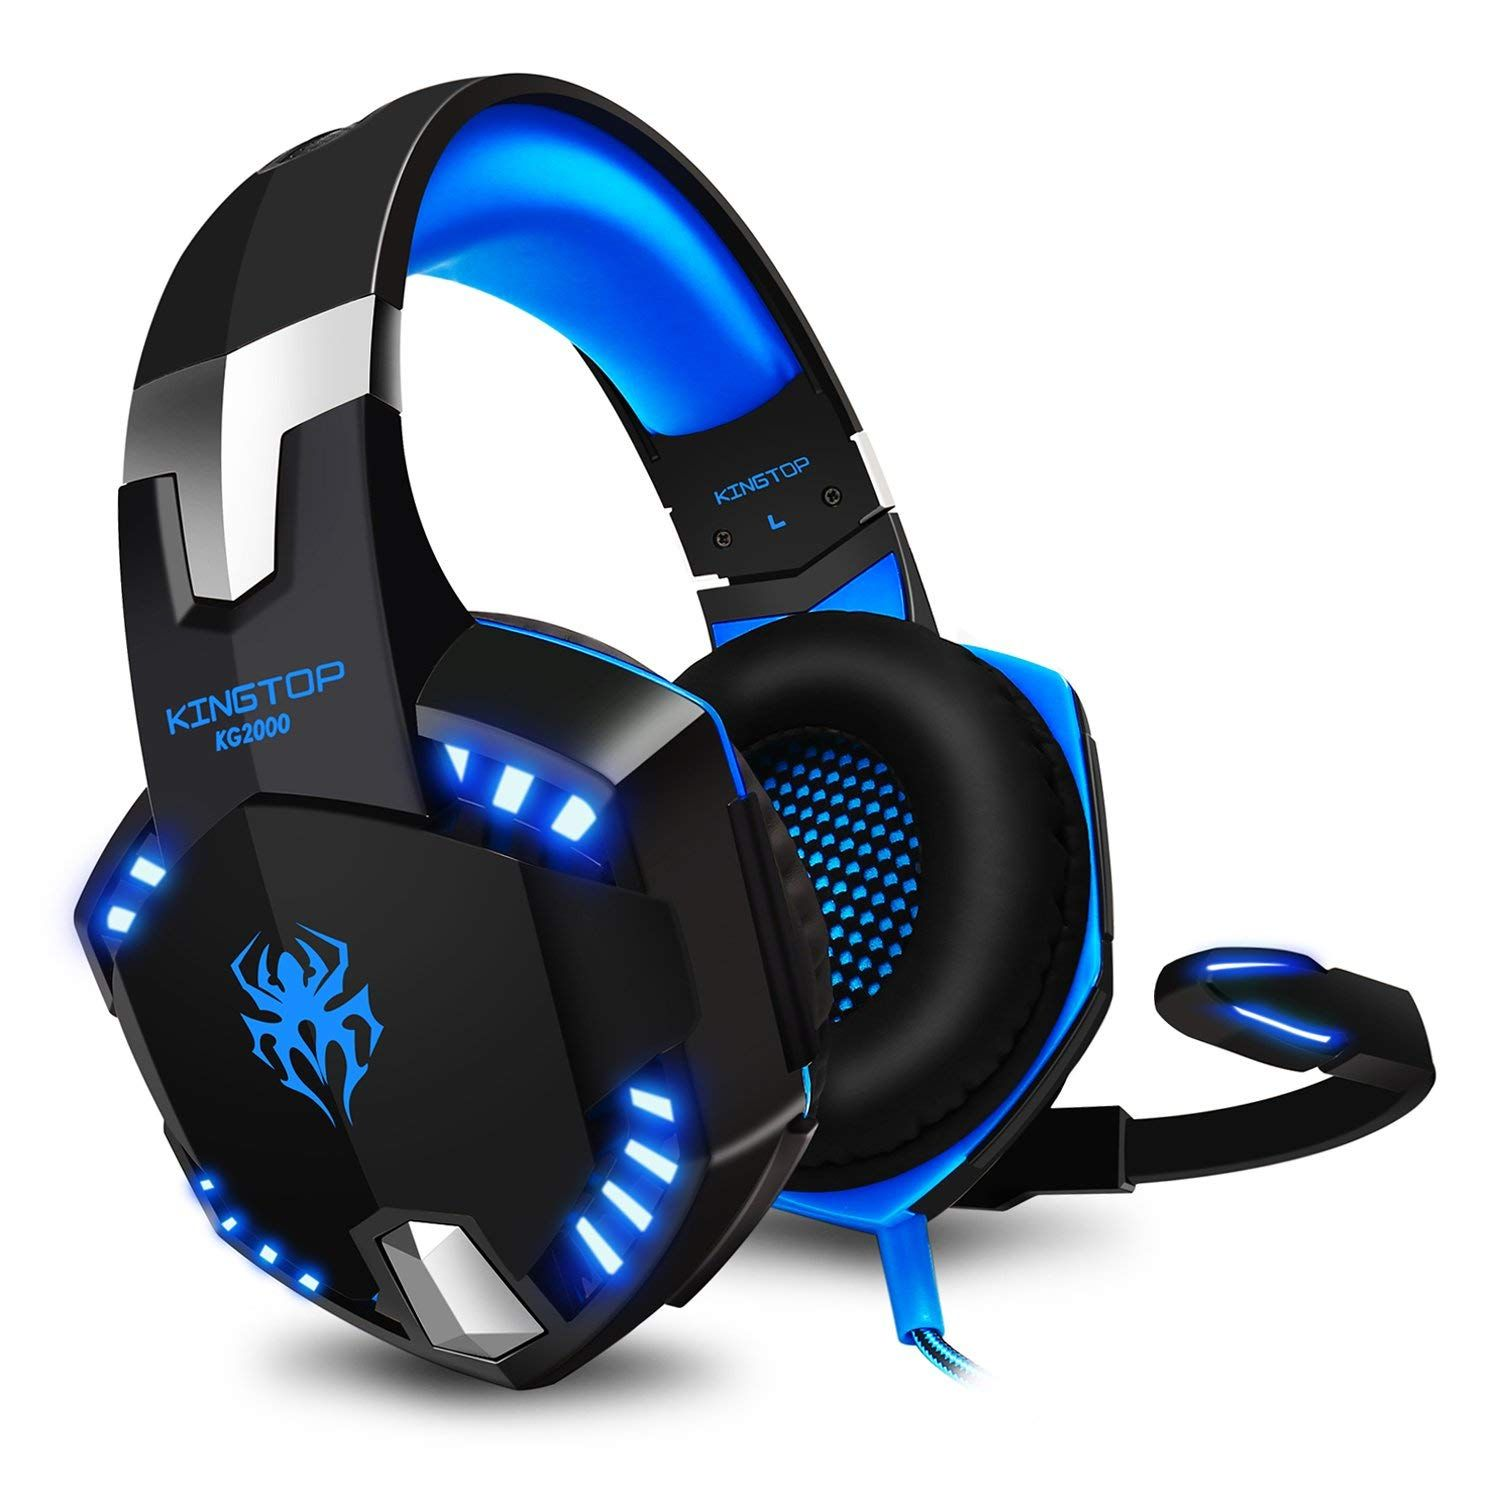 Casque Gaming Ps4 Kingtop Kg2000 Ecouteur Gamer Filaire Avec Micro Basse Stereo Led Lumiere Controle Du Volume Pour Playsta Nintendo Switch Gaming Headset Xbox